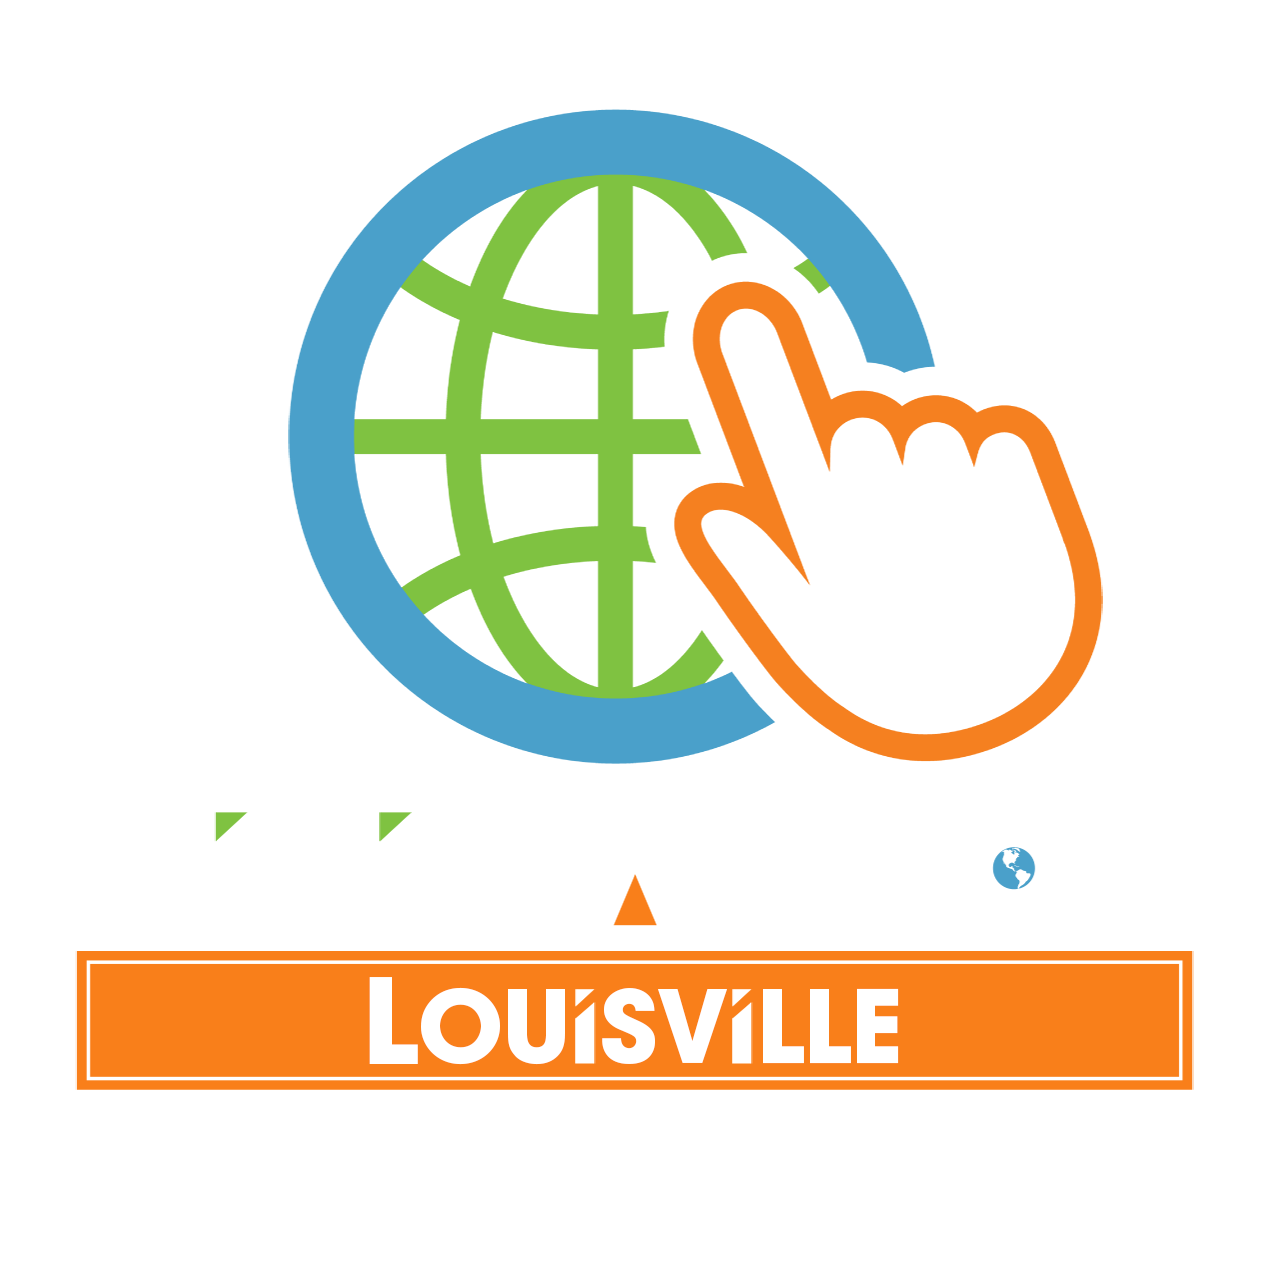 Louisville Digital Marketing, Media & Advertising Conference